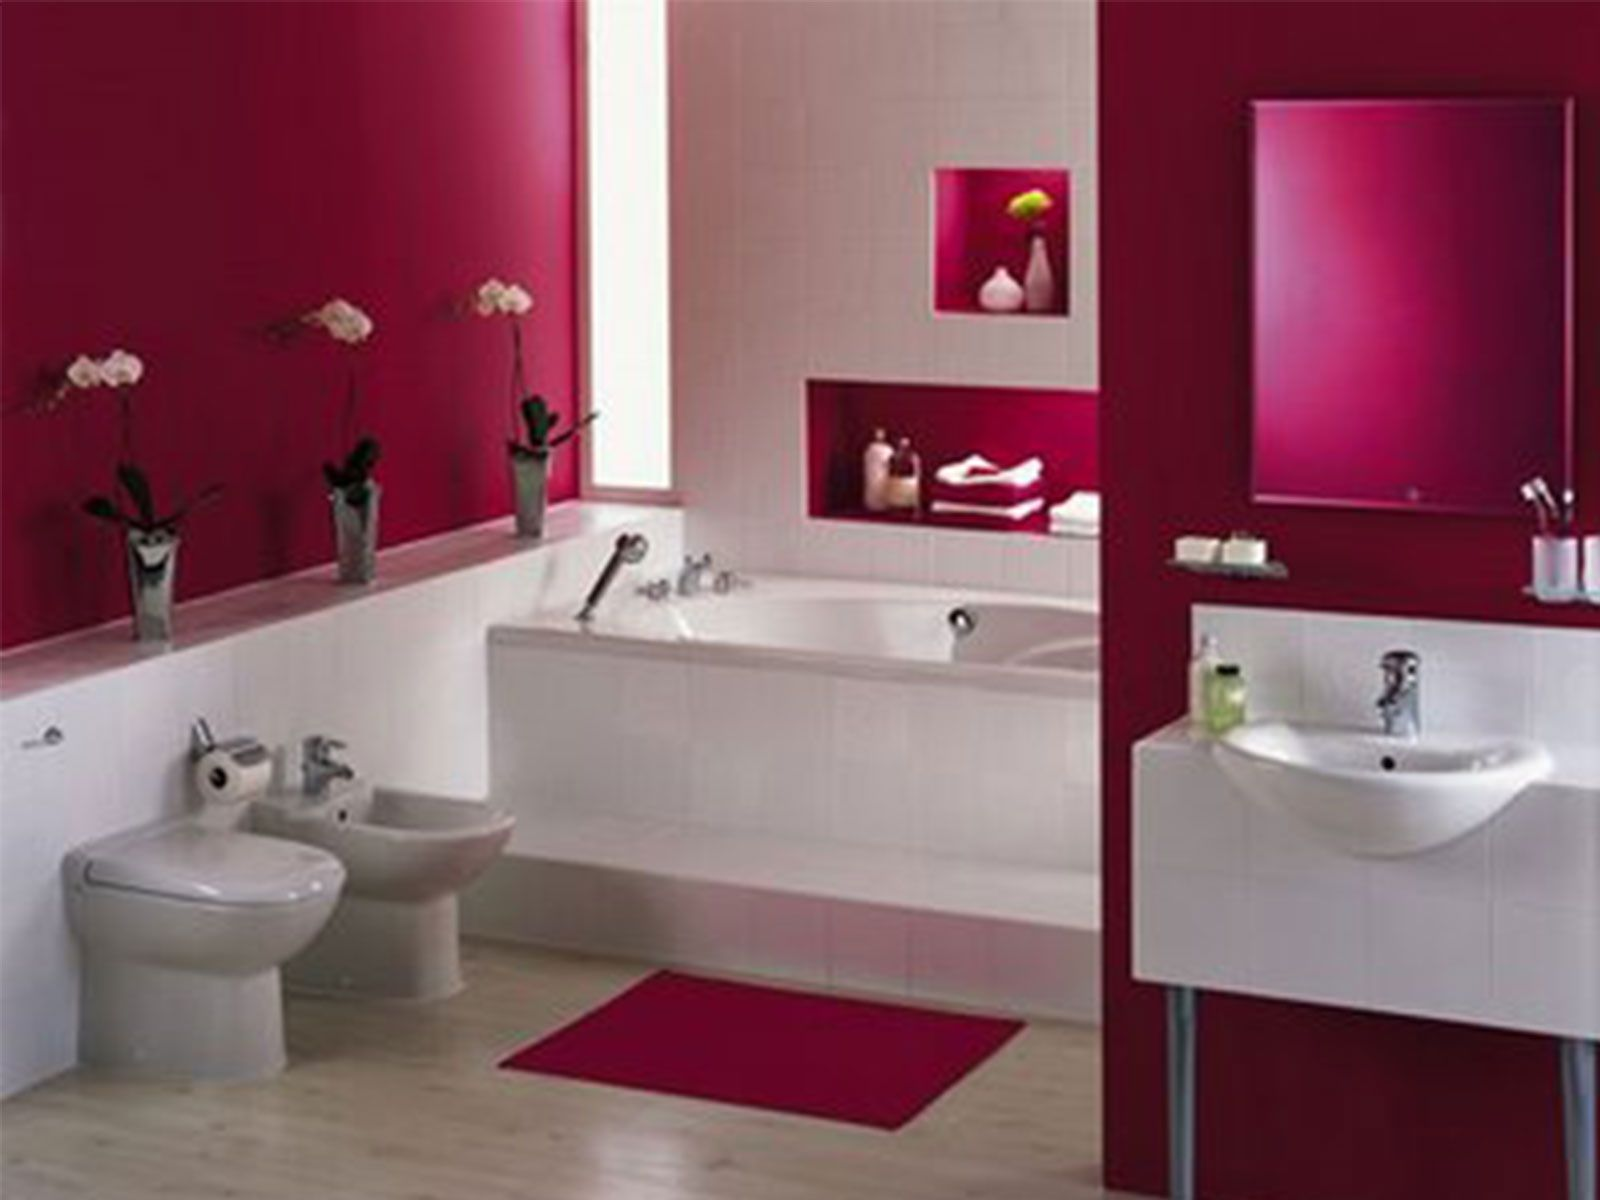 bathroom-cute-bathroom-decorating-pink-and-white-porcelain-wall-tile ...